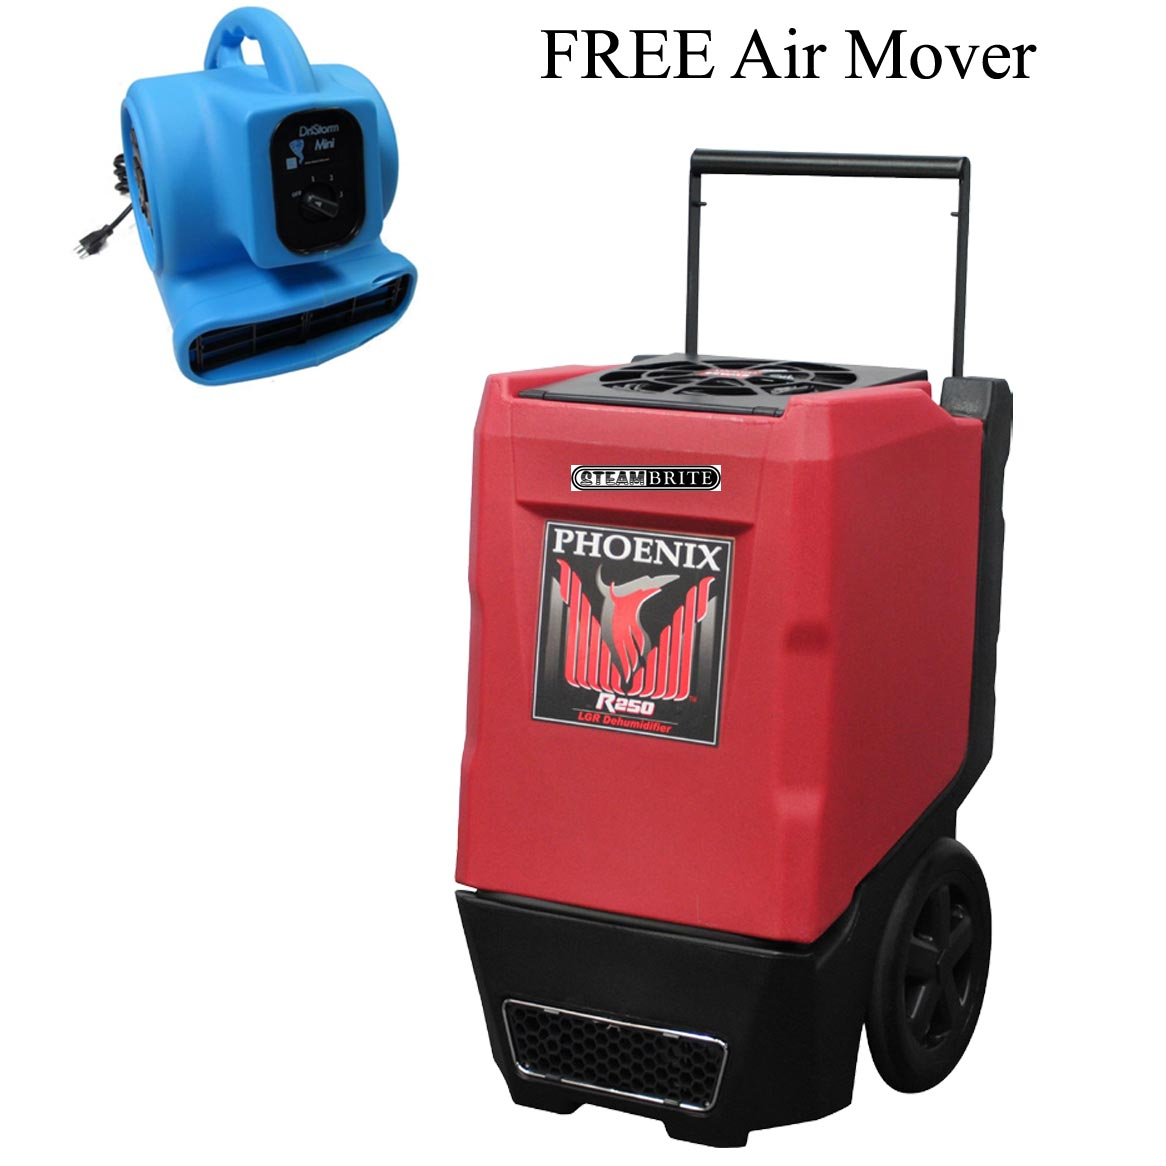 Phoenix R250 Industrial Restoration Dehumidifier 403500 FREE Shipping FREE Air Mover $2349.00